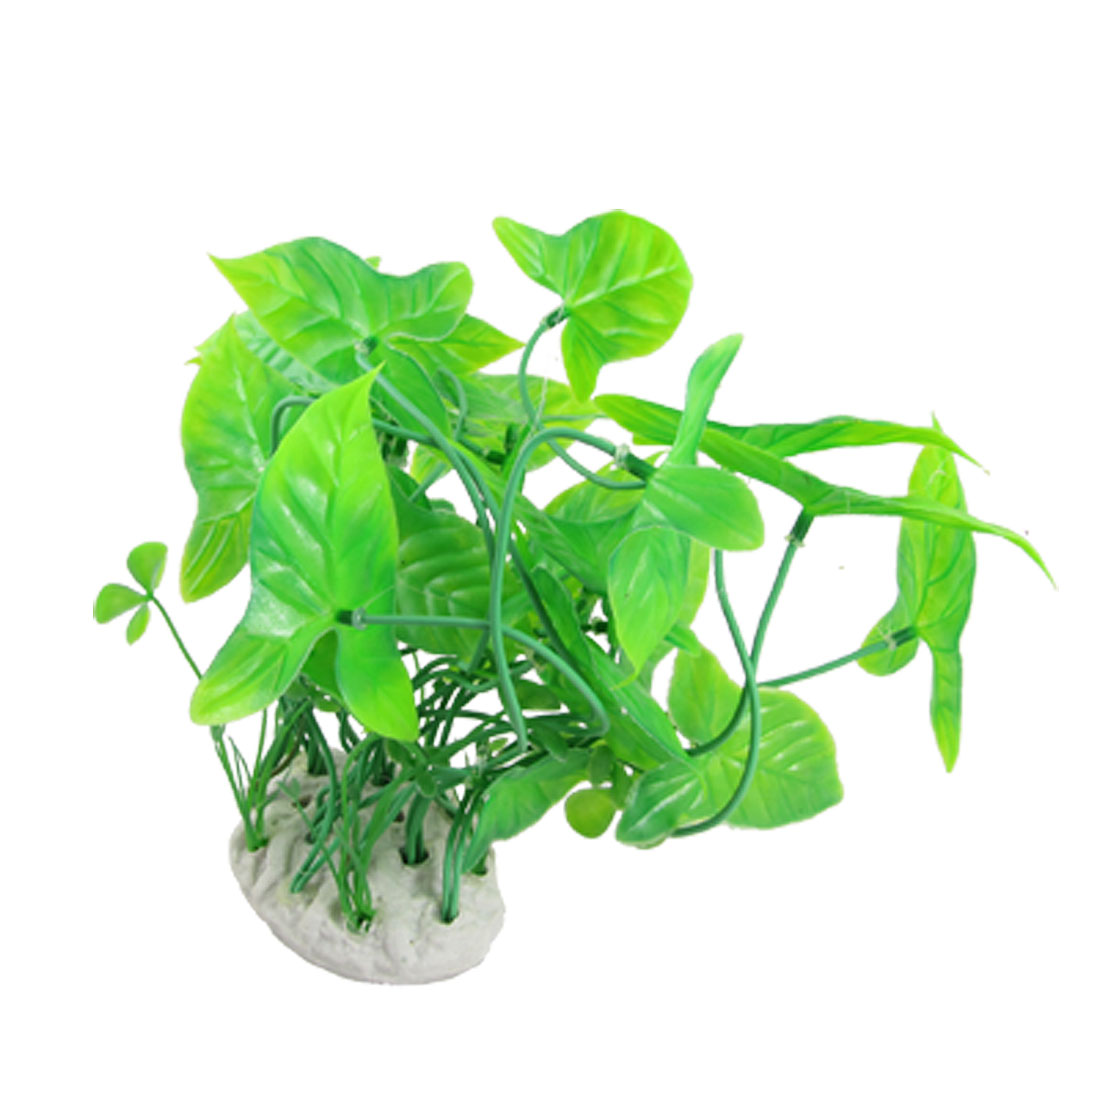 Aquarium Fish Tank Green Decorative Plastic Plant Grass